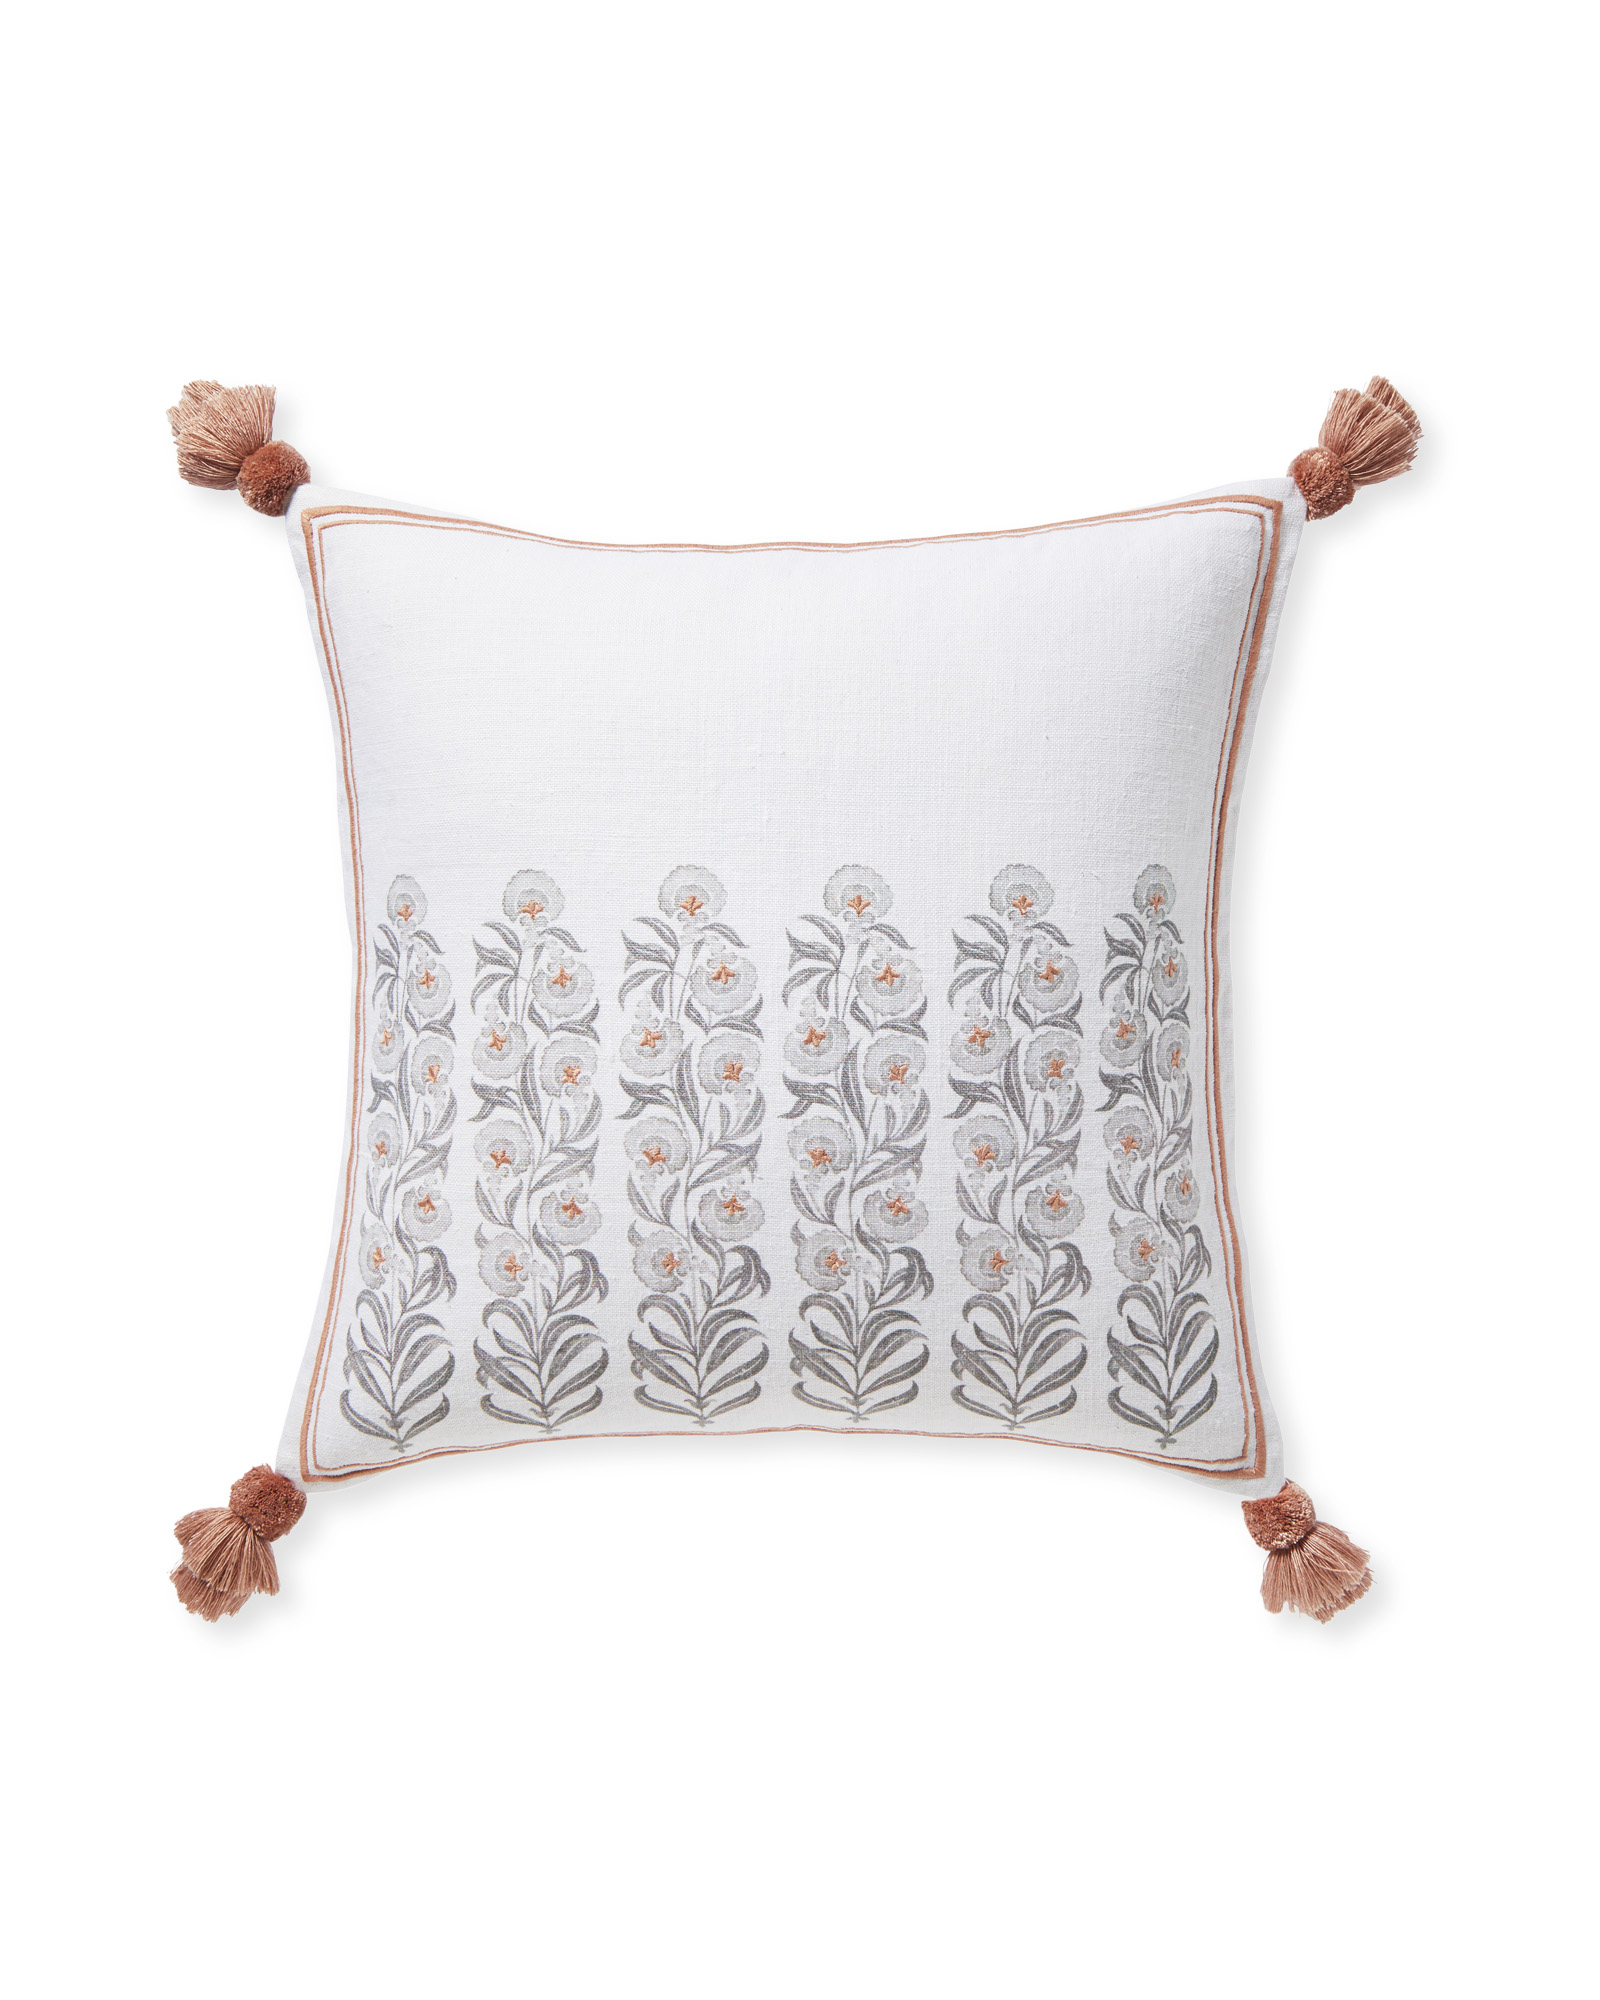 Millwood Pillow Cover, Wild Rose/Fog